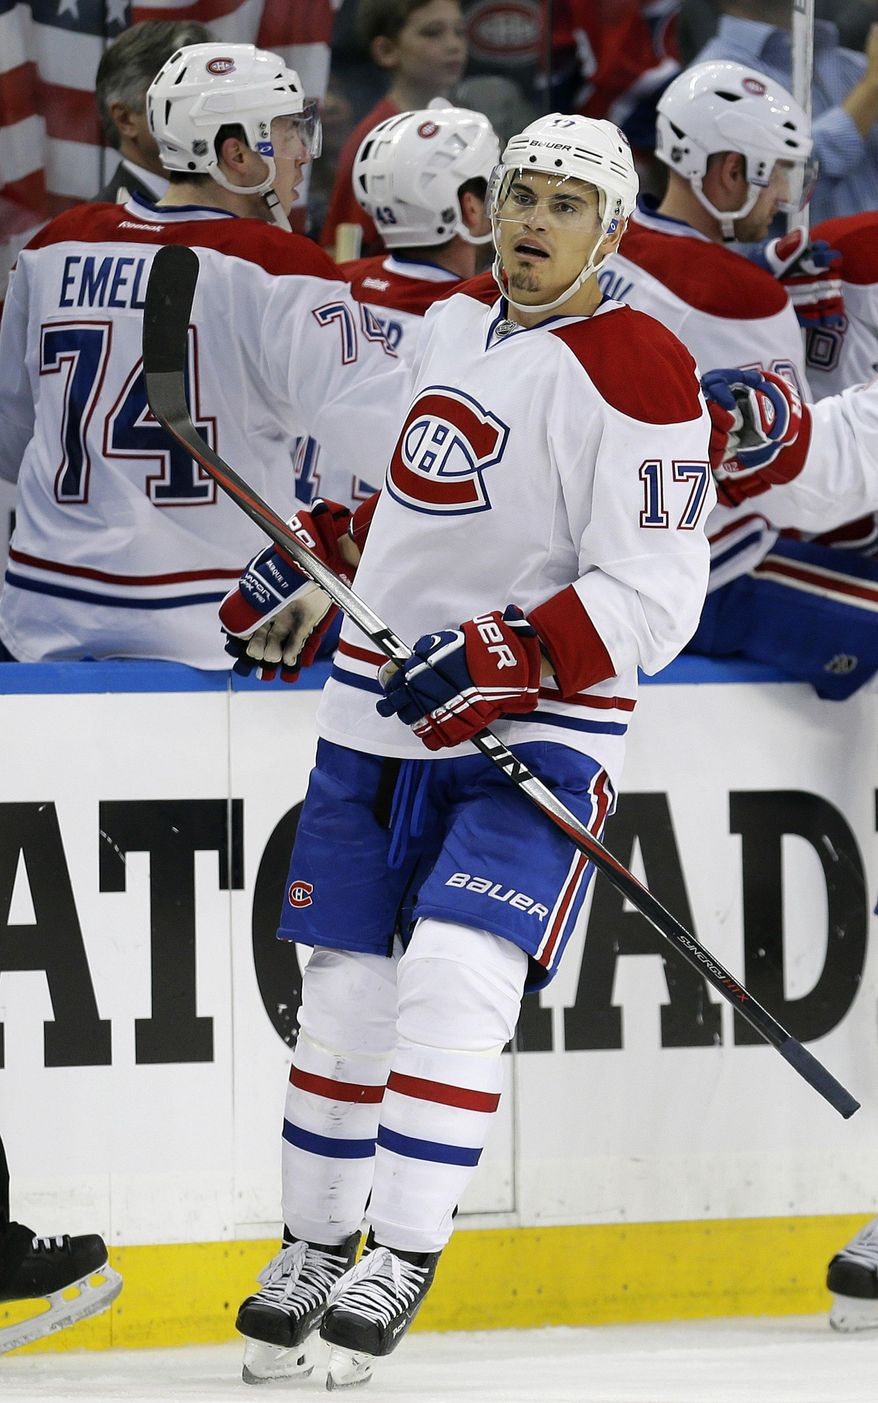 Montreal Canadiens left wing Rene Bourque (17) celebrates with teammates after scoring against the Tampa Bay Lightning during the second period of Game 2 of a first-round NHL hockey playoff series on Friday, April 18, 2014, in Tampa, Fla. (AP Photo/Chris O'Meara)